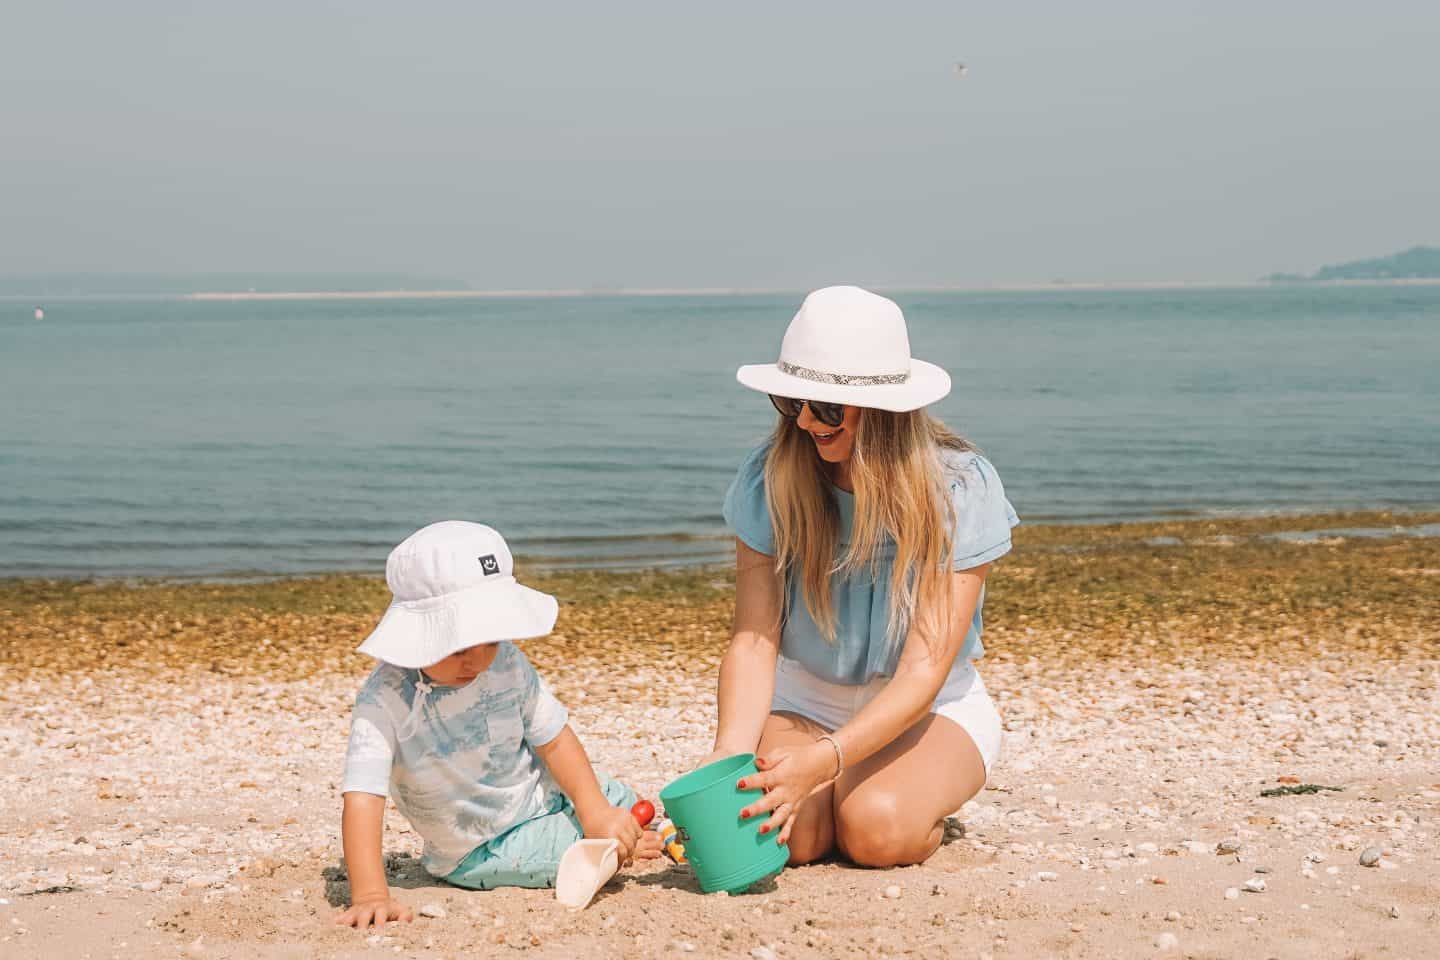 mom and son playing on the beach with beach toys.